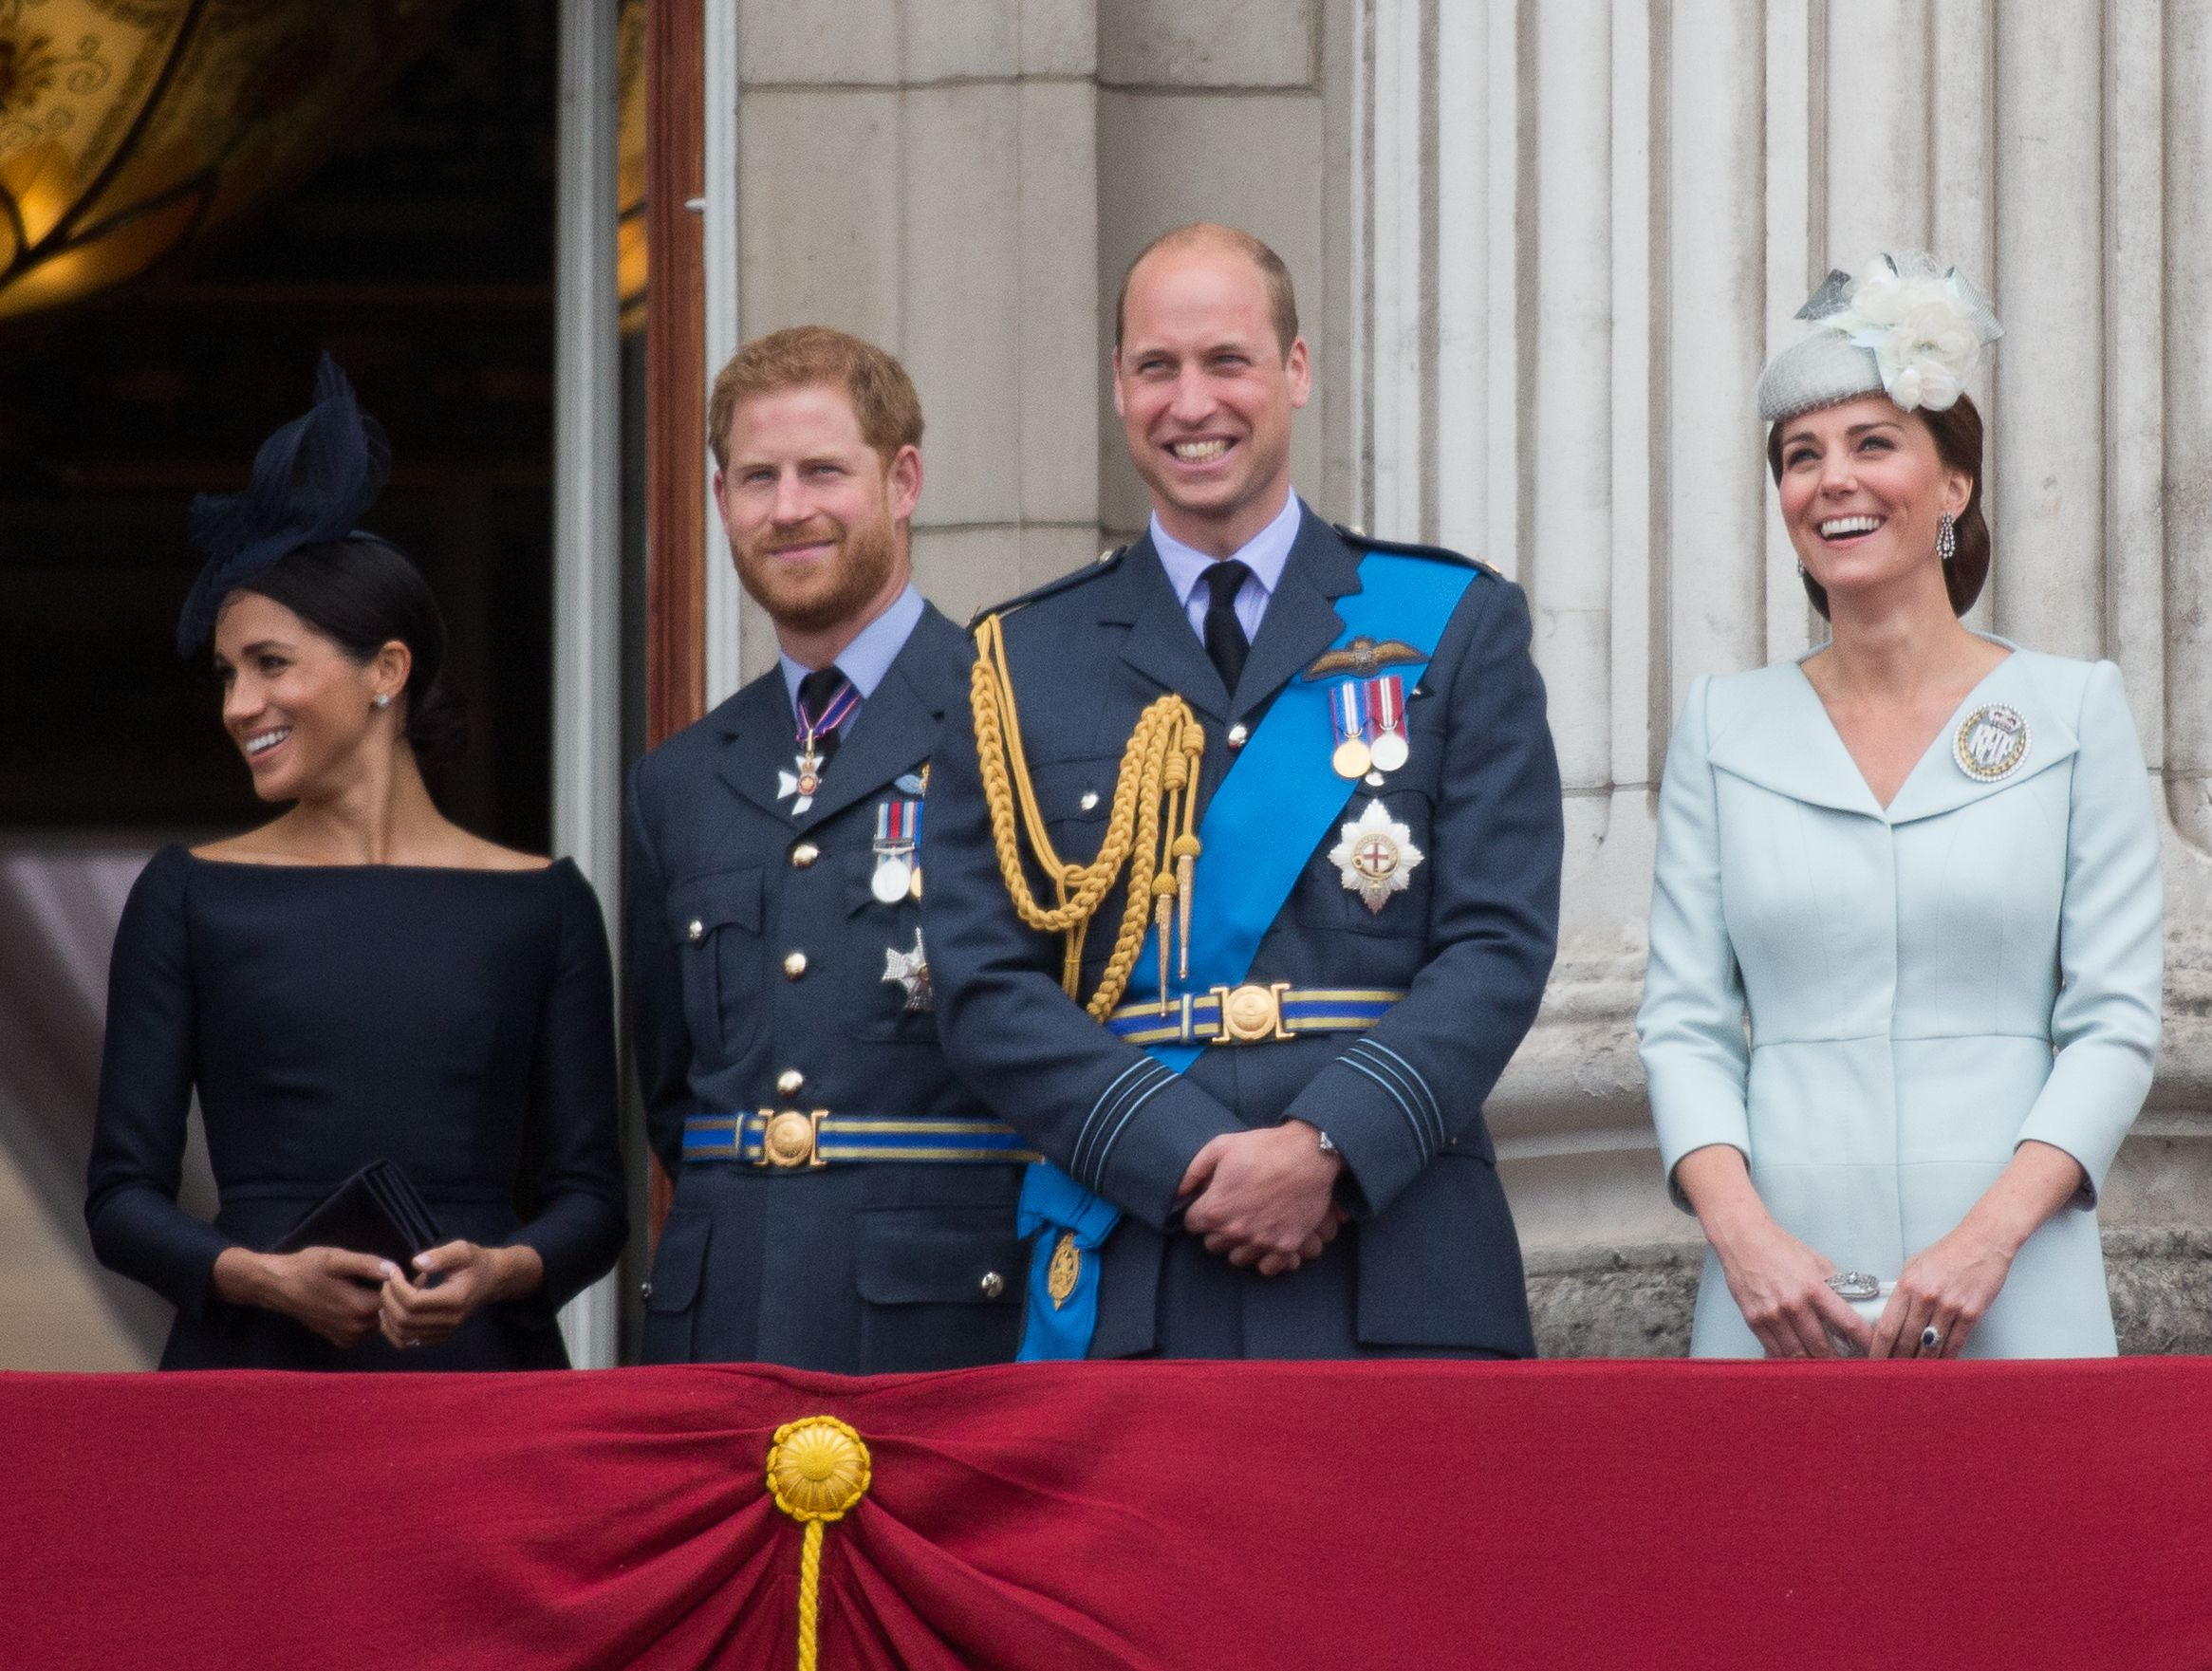 Meghan Duchess of Sussex, Prince Harry, Prince William and Catherine Duchess of Cambridge on the balcony of Buckingham Palace100th Anniversary of the Royal Air Force, London, UK - 10 Jul 2018